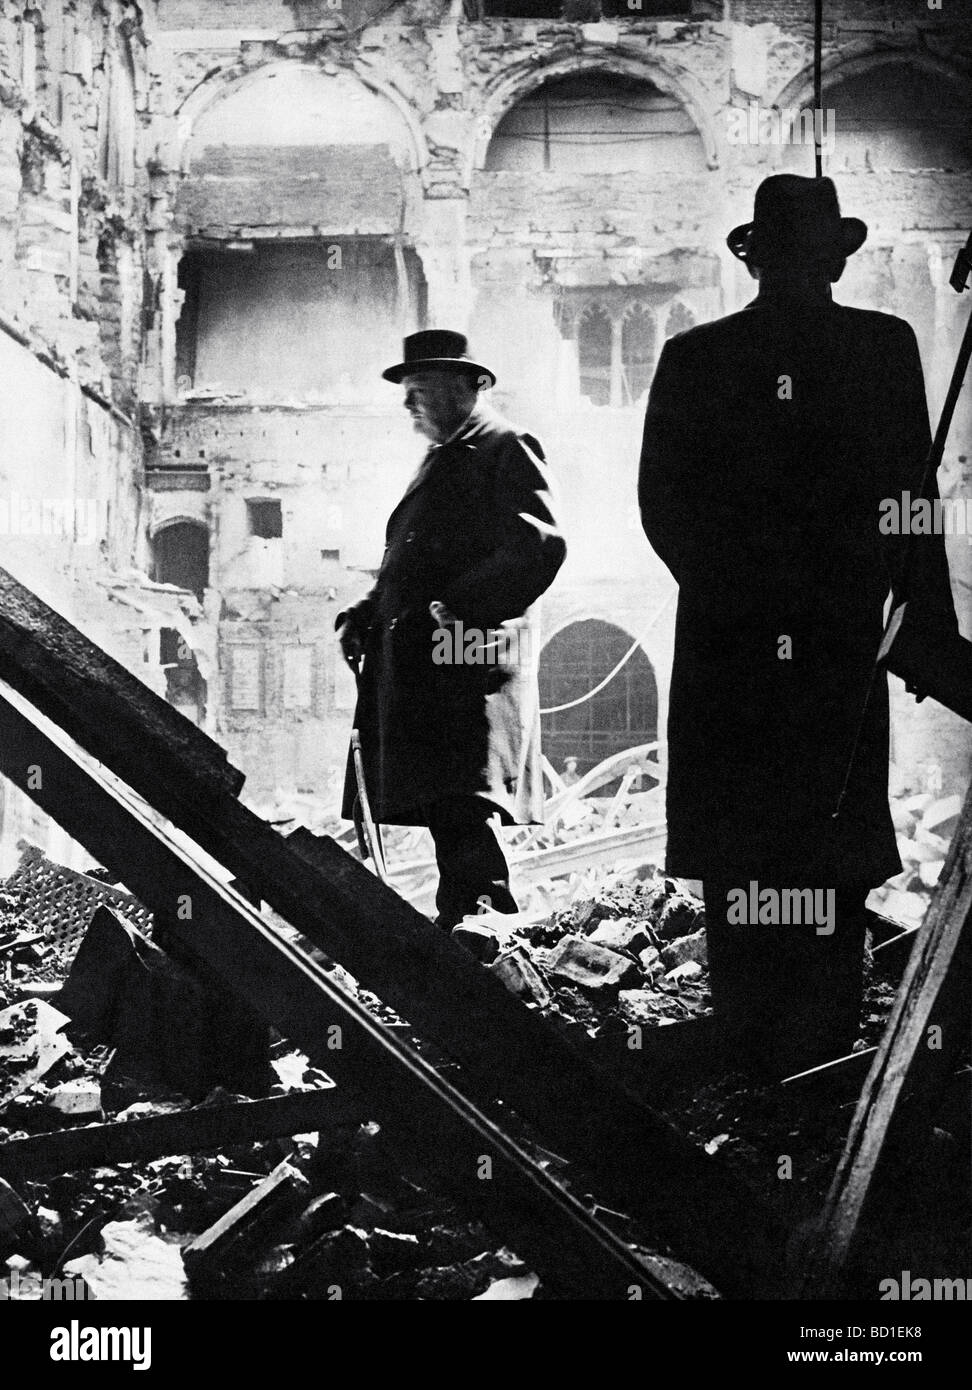 WINSTON CHURCHILL  inspects the ruins of the House of Commons after a night raid on 10/11 May 1941 - Stock Image